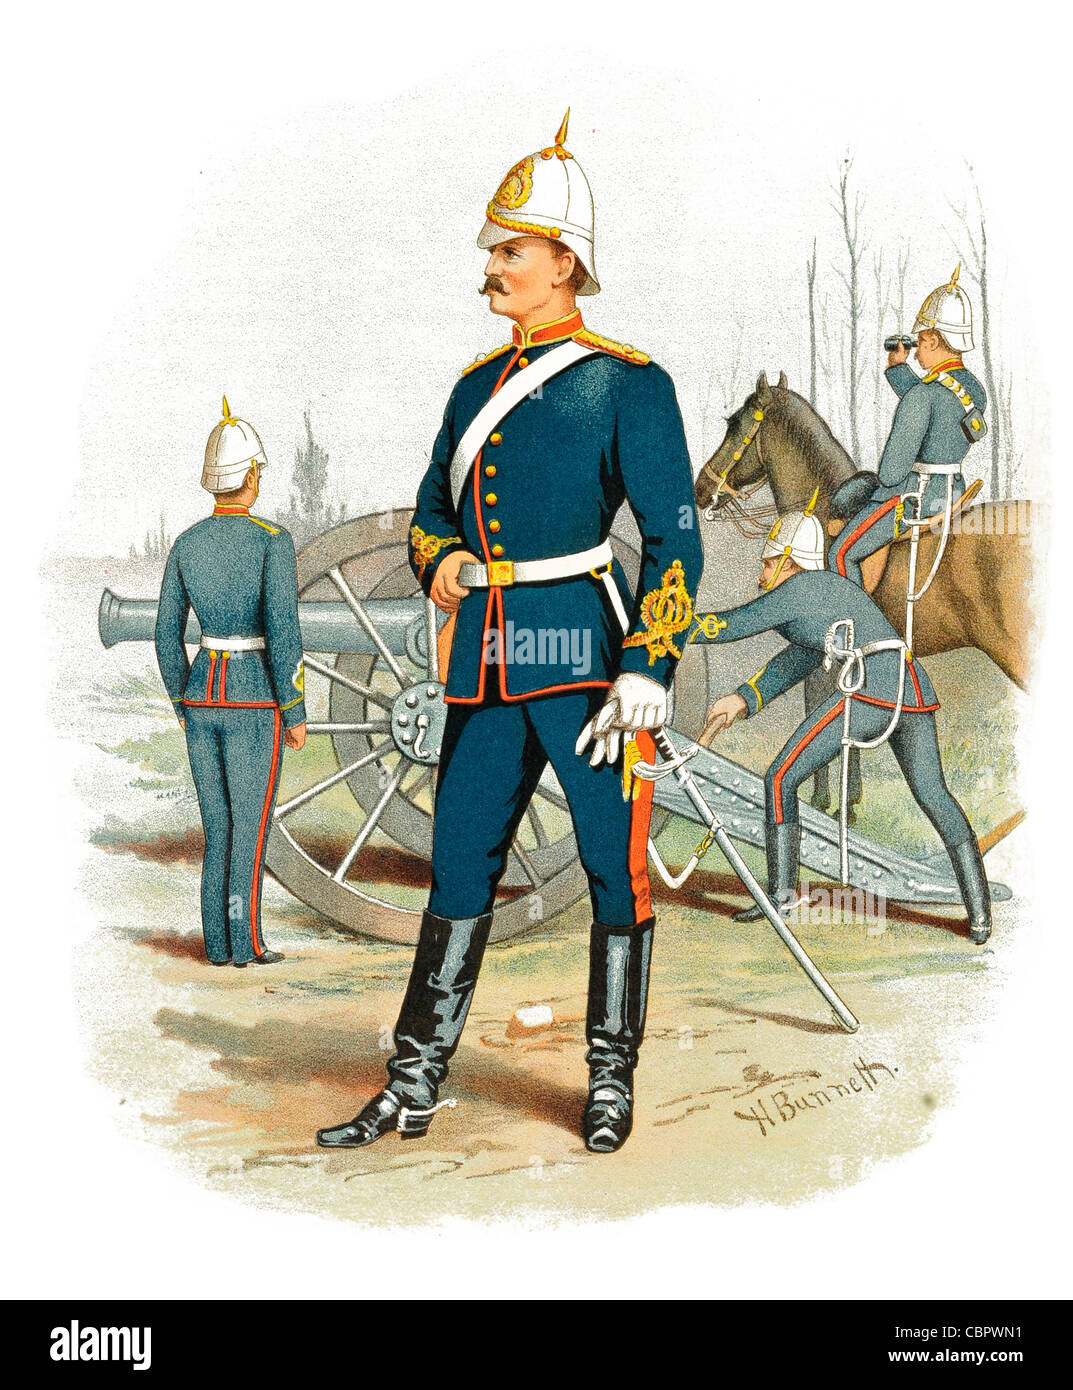 british raj in india East india company british involvement in india during the 18th century can be divided into two phases, one ending and the other beginning at mid-century.